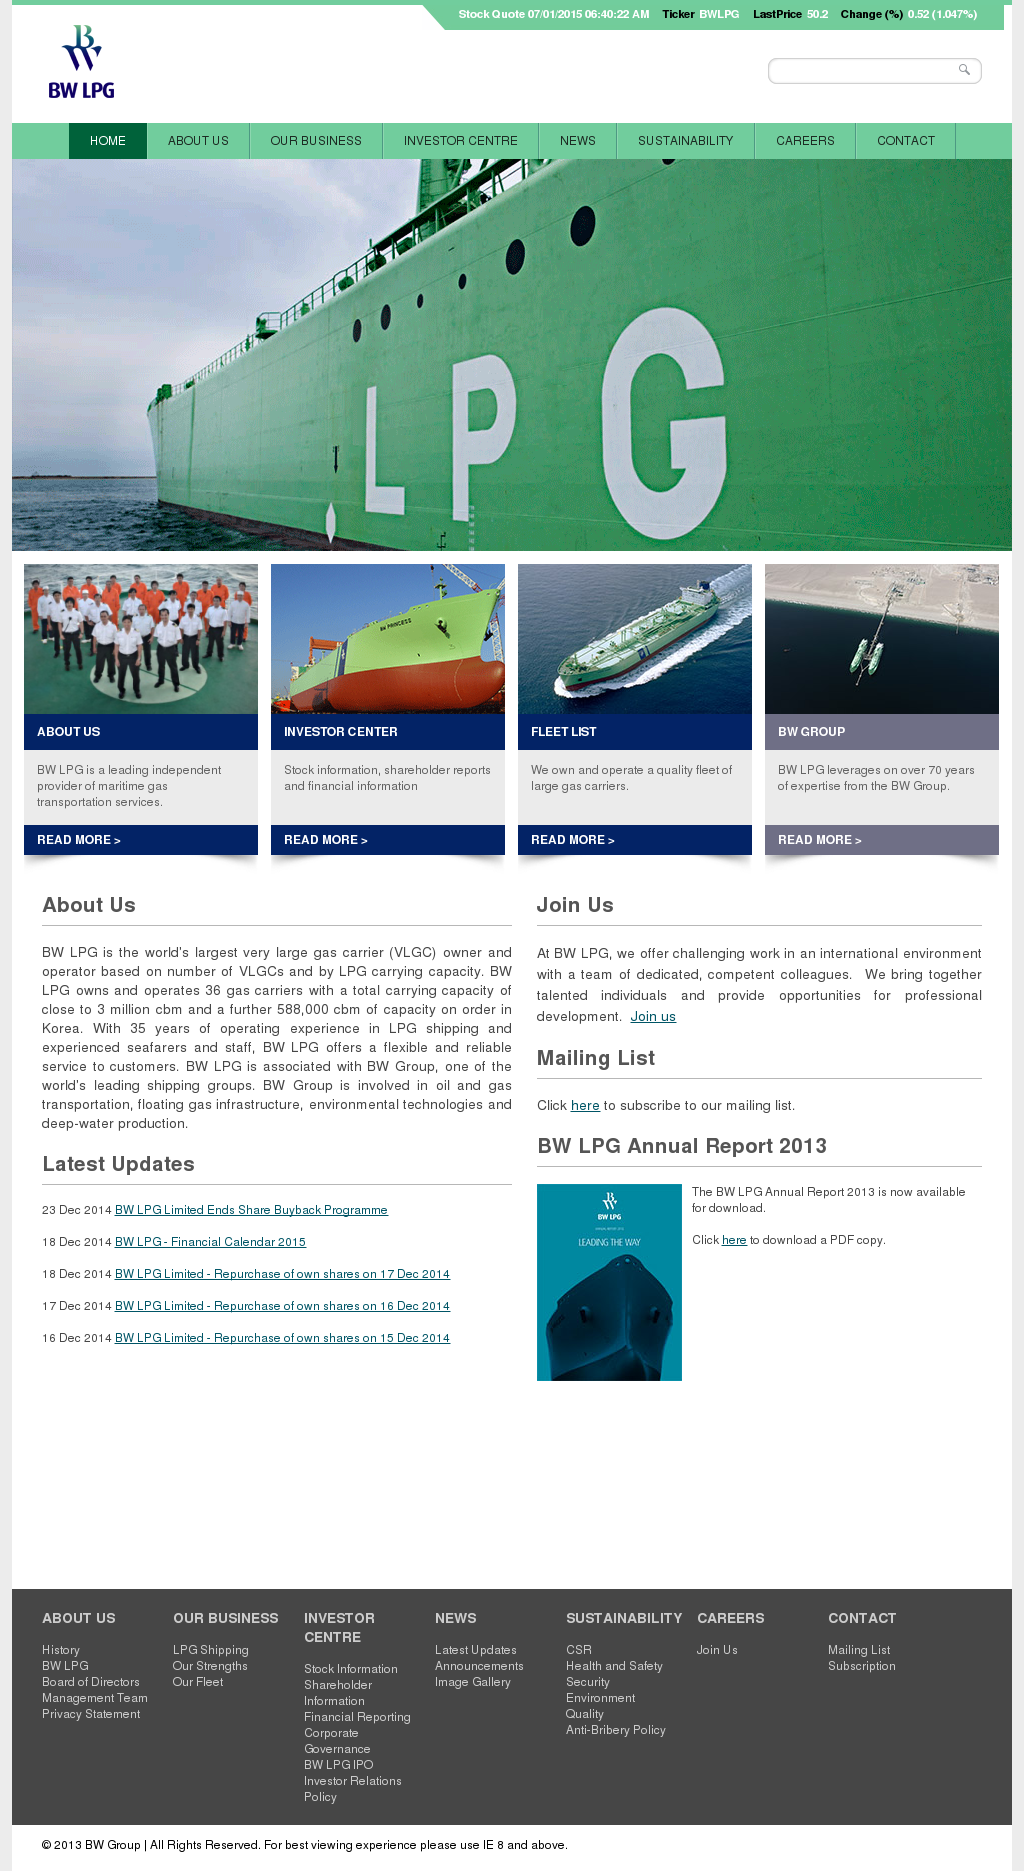 BW LPG Competitors, Revenue and Employees - Owler Company Profile